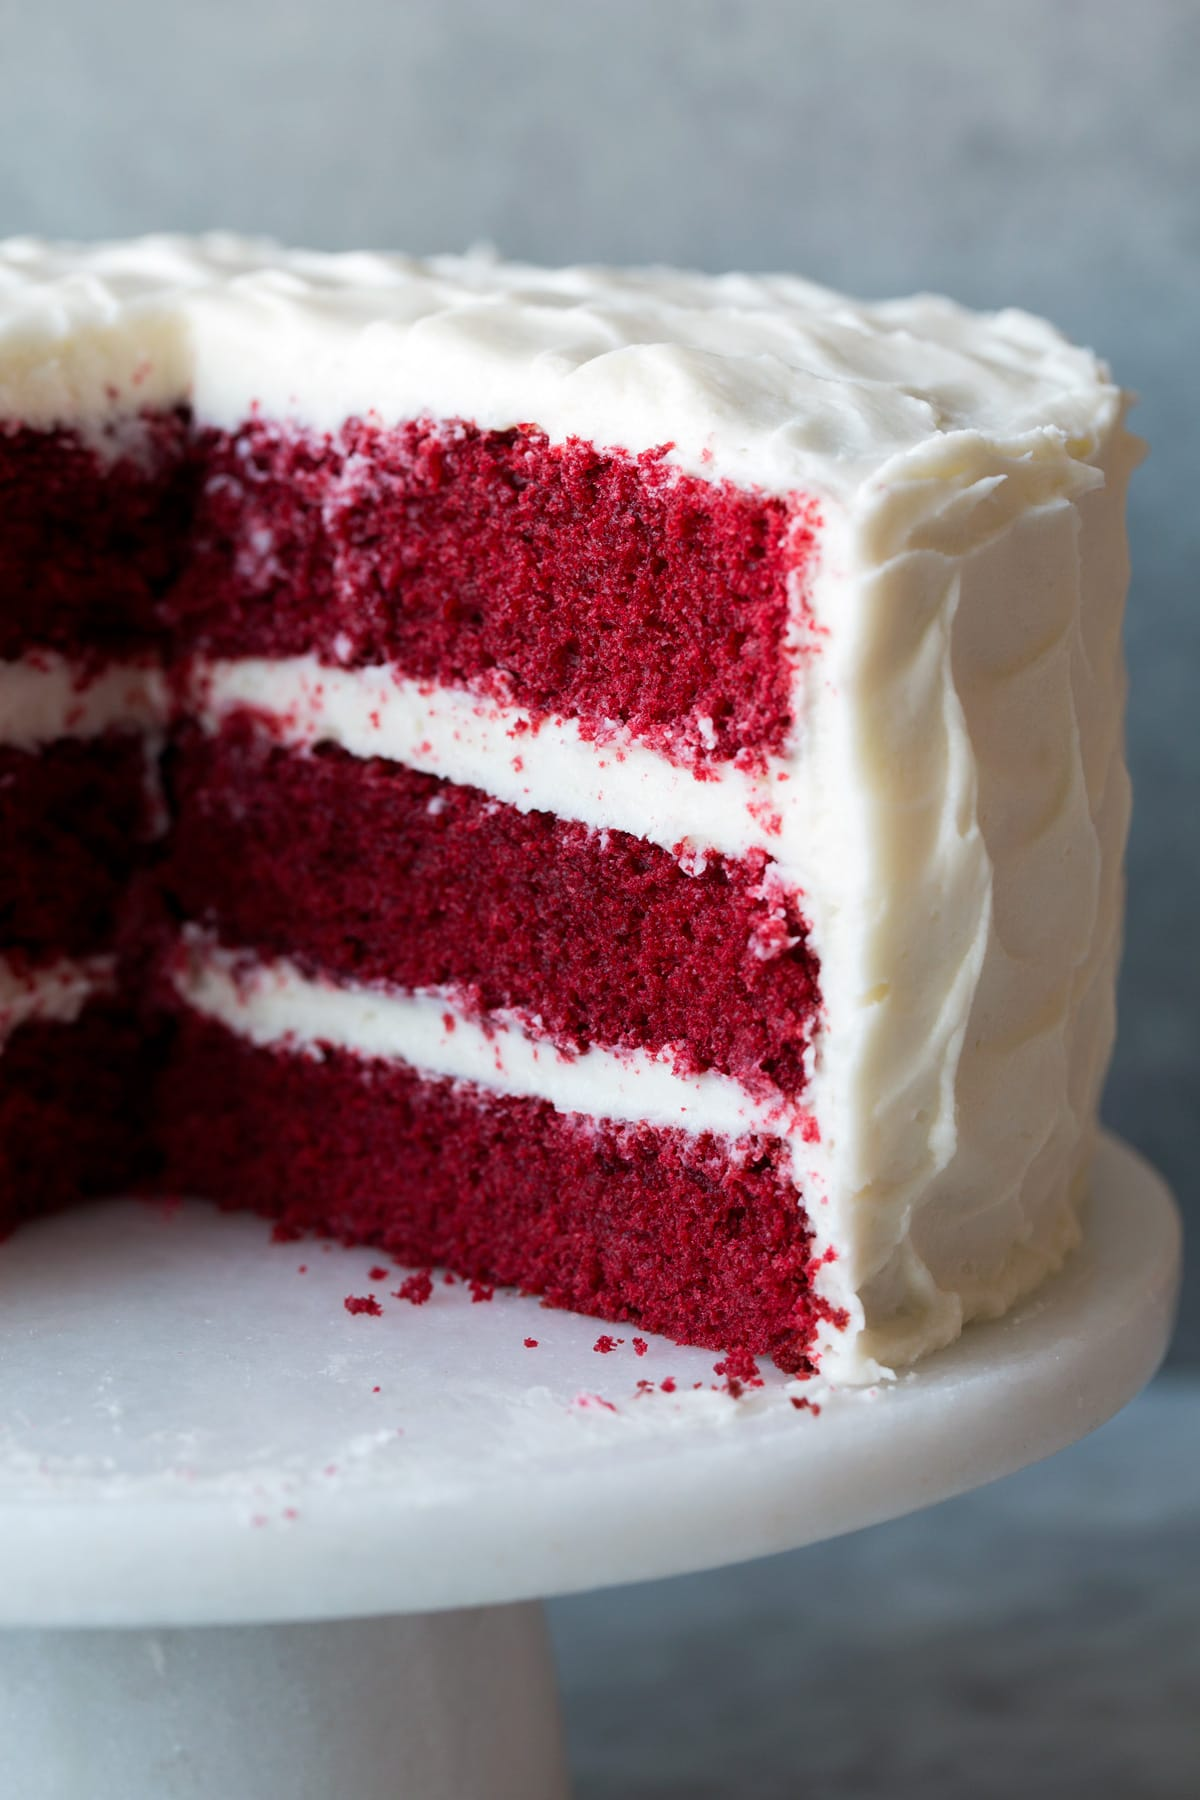 Red Velvet cake with a slice removed to show interior of cake. Cake is resting on a cake stand.